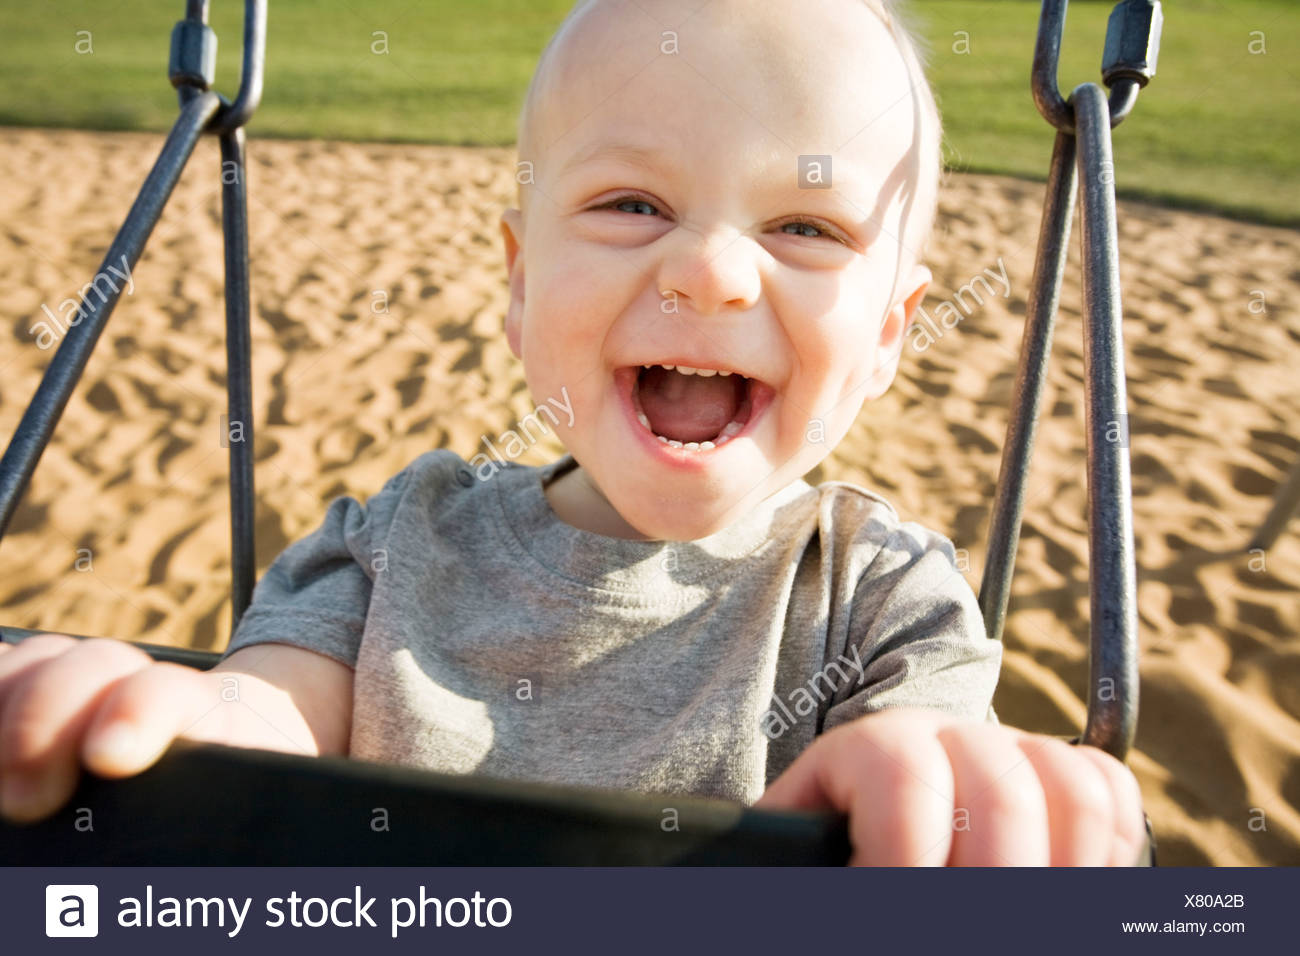 Boy in a swing Stock Photo